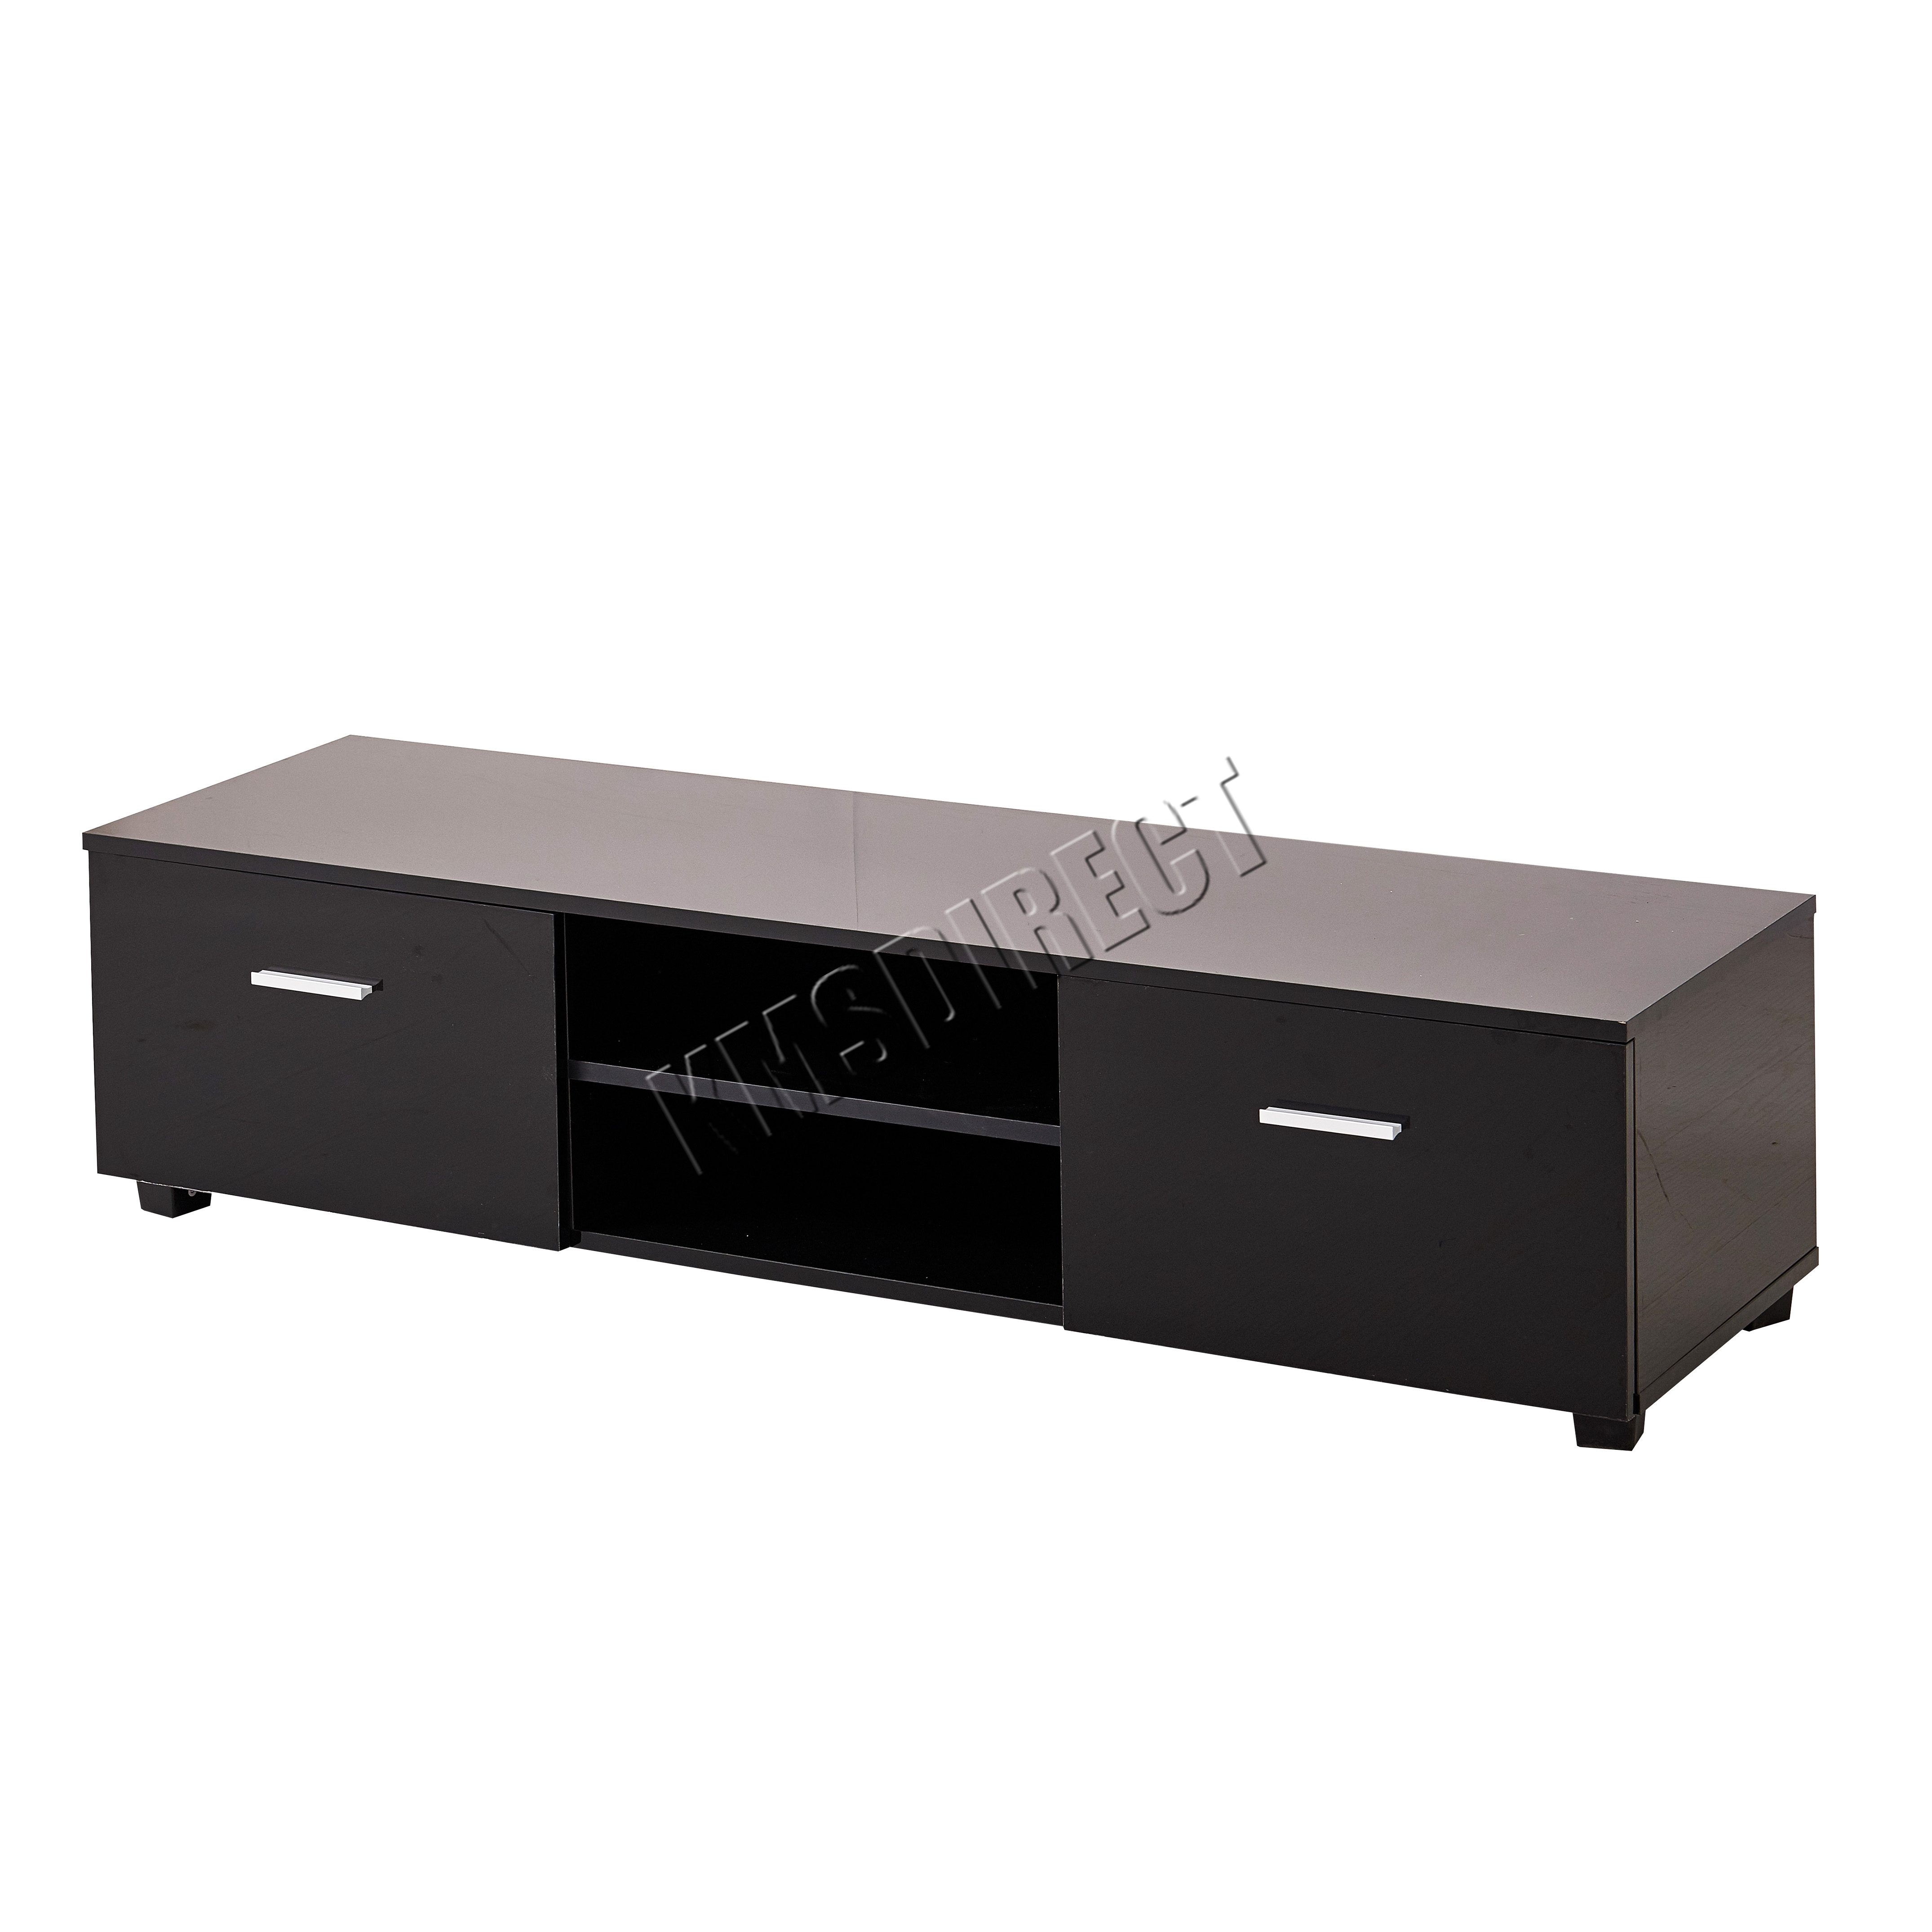 FoxHunter High Gloss MDF TV Cabinet Unit Stand Black Home ...